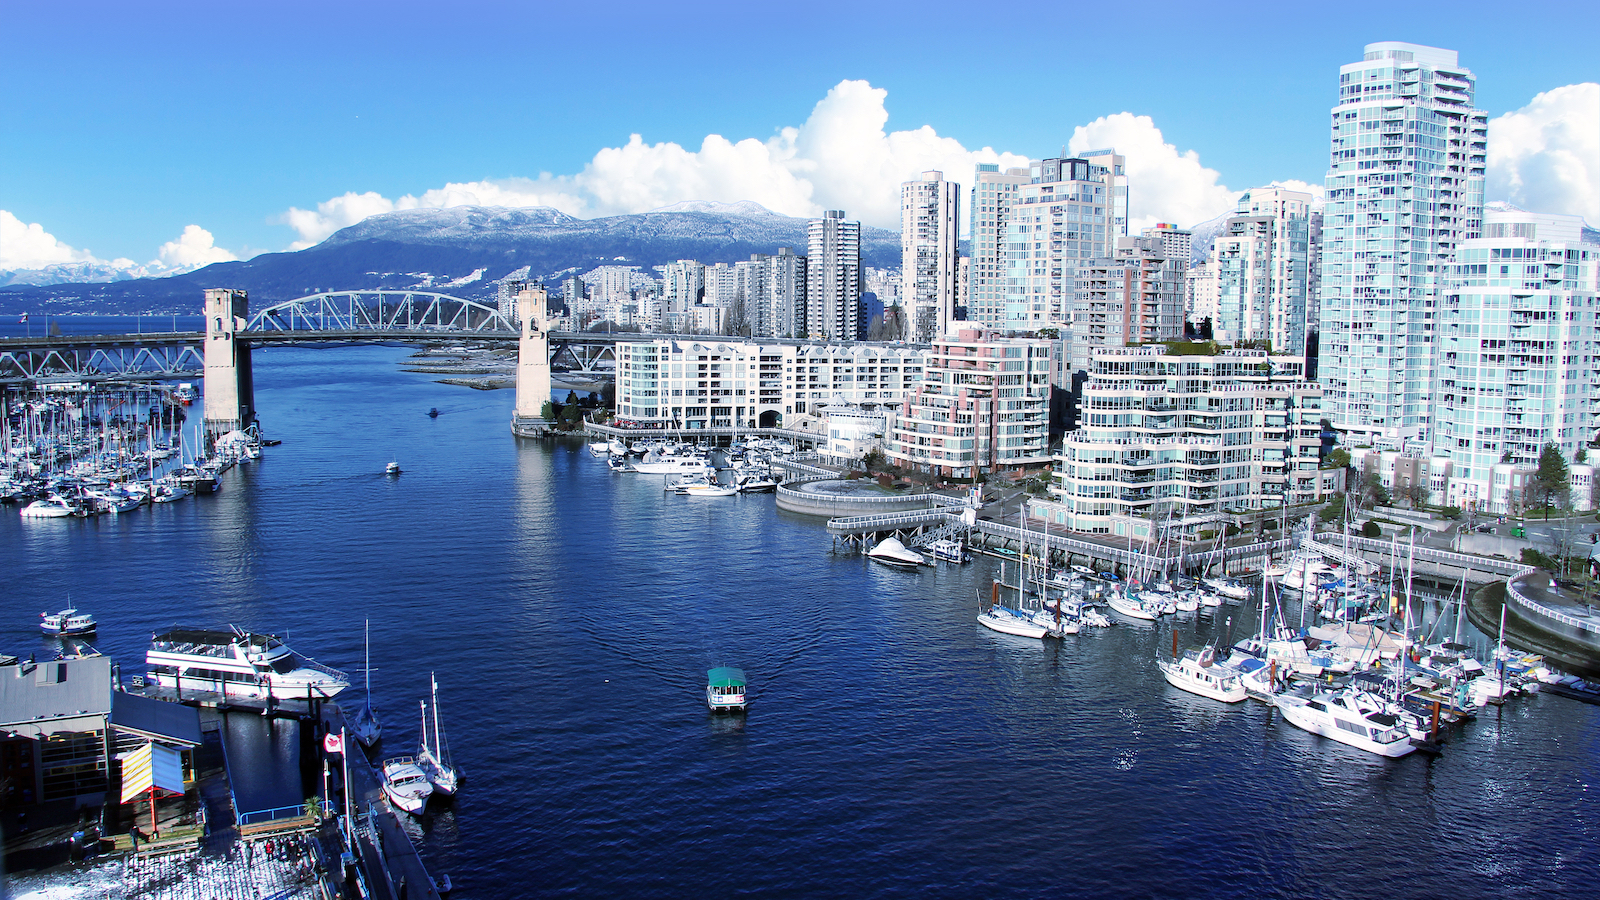 Vancouver Townsite Tour by GyPSy Guide App